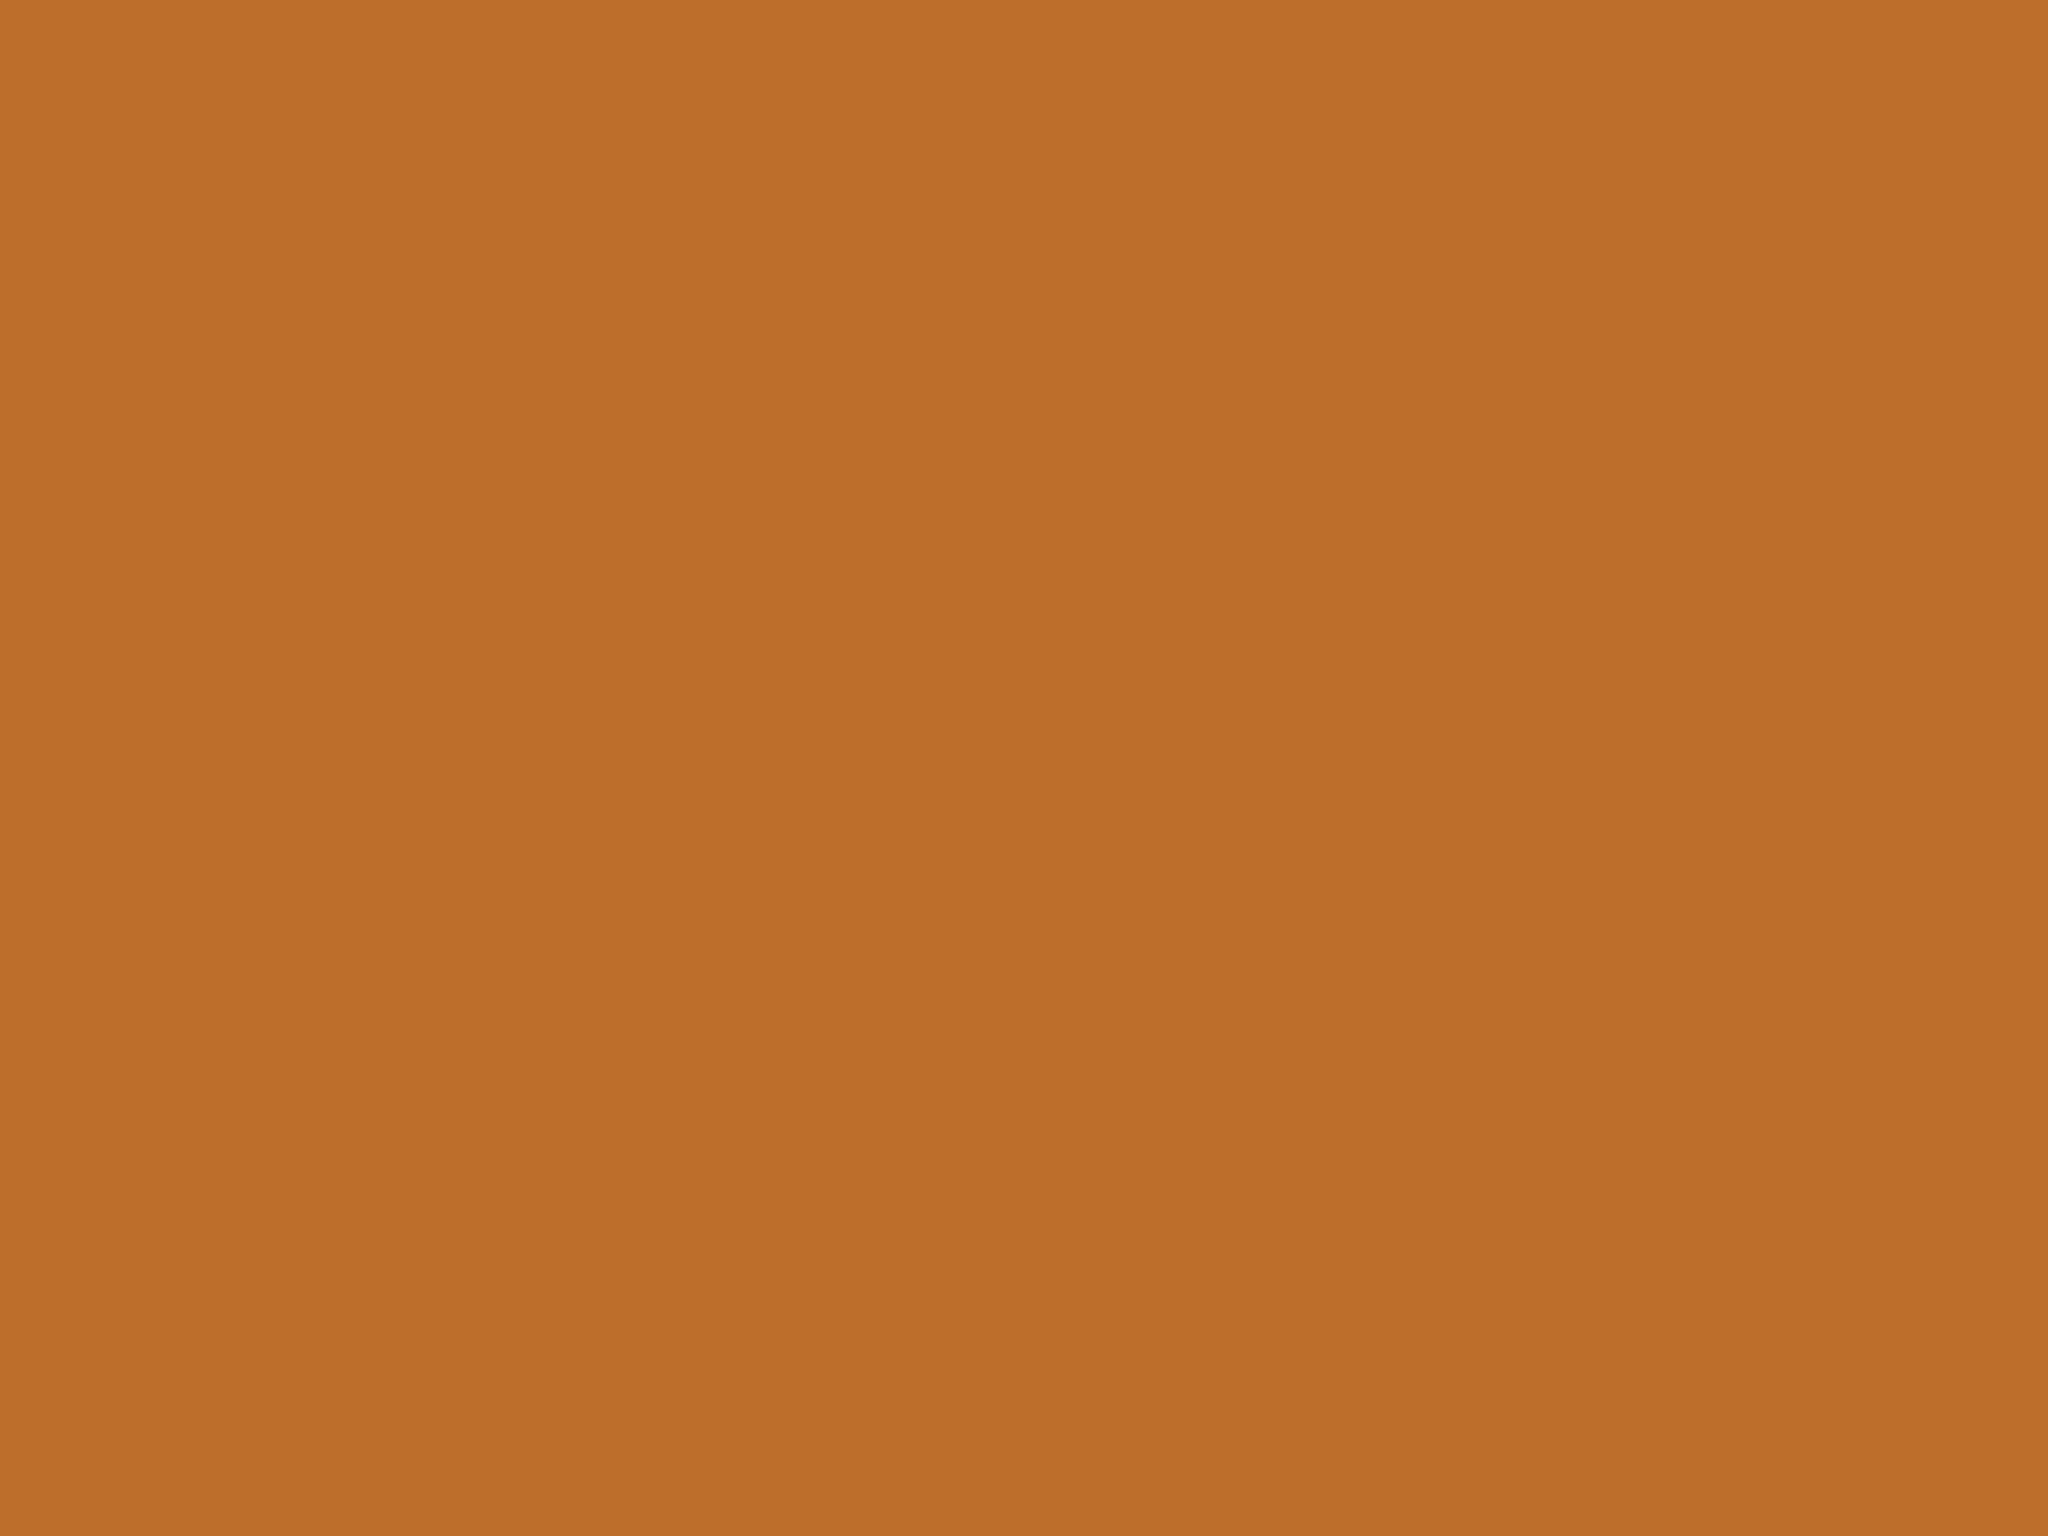 2048x1536 Liver Dogs Solid Color Background